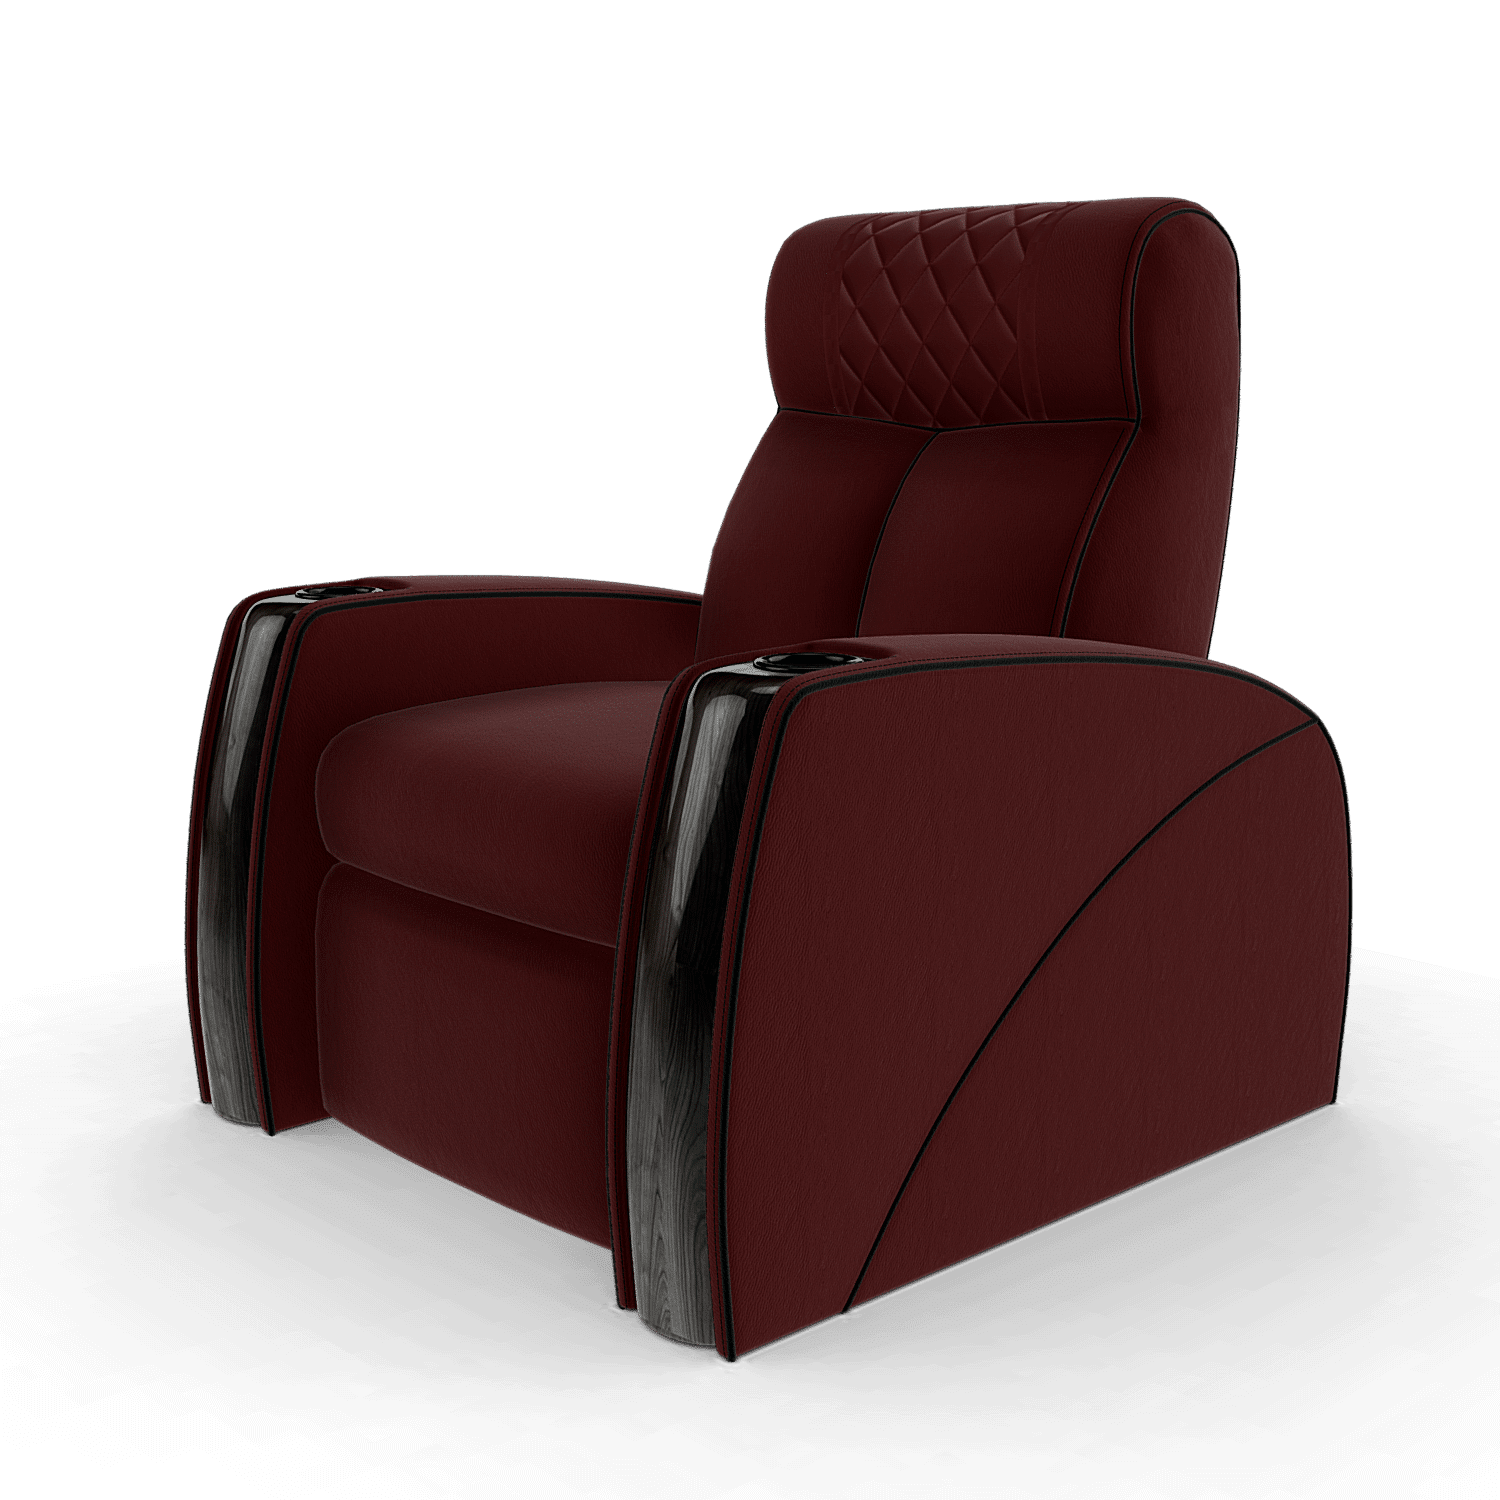 home_theater_seats red